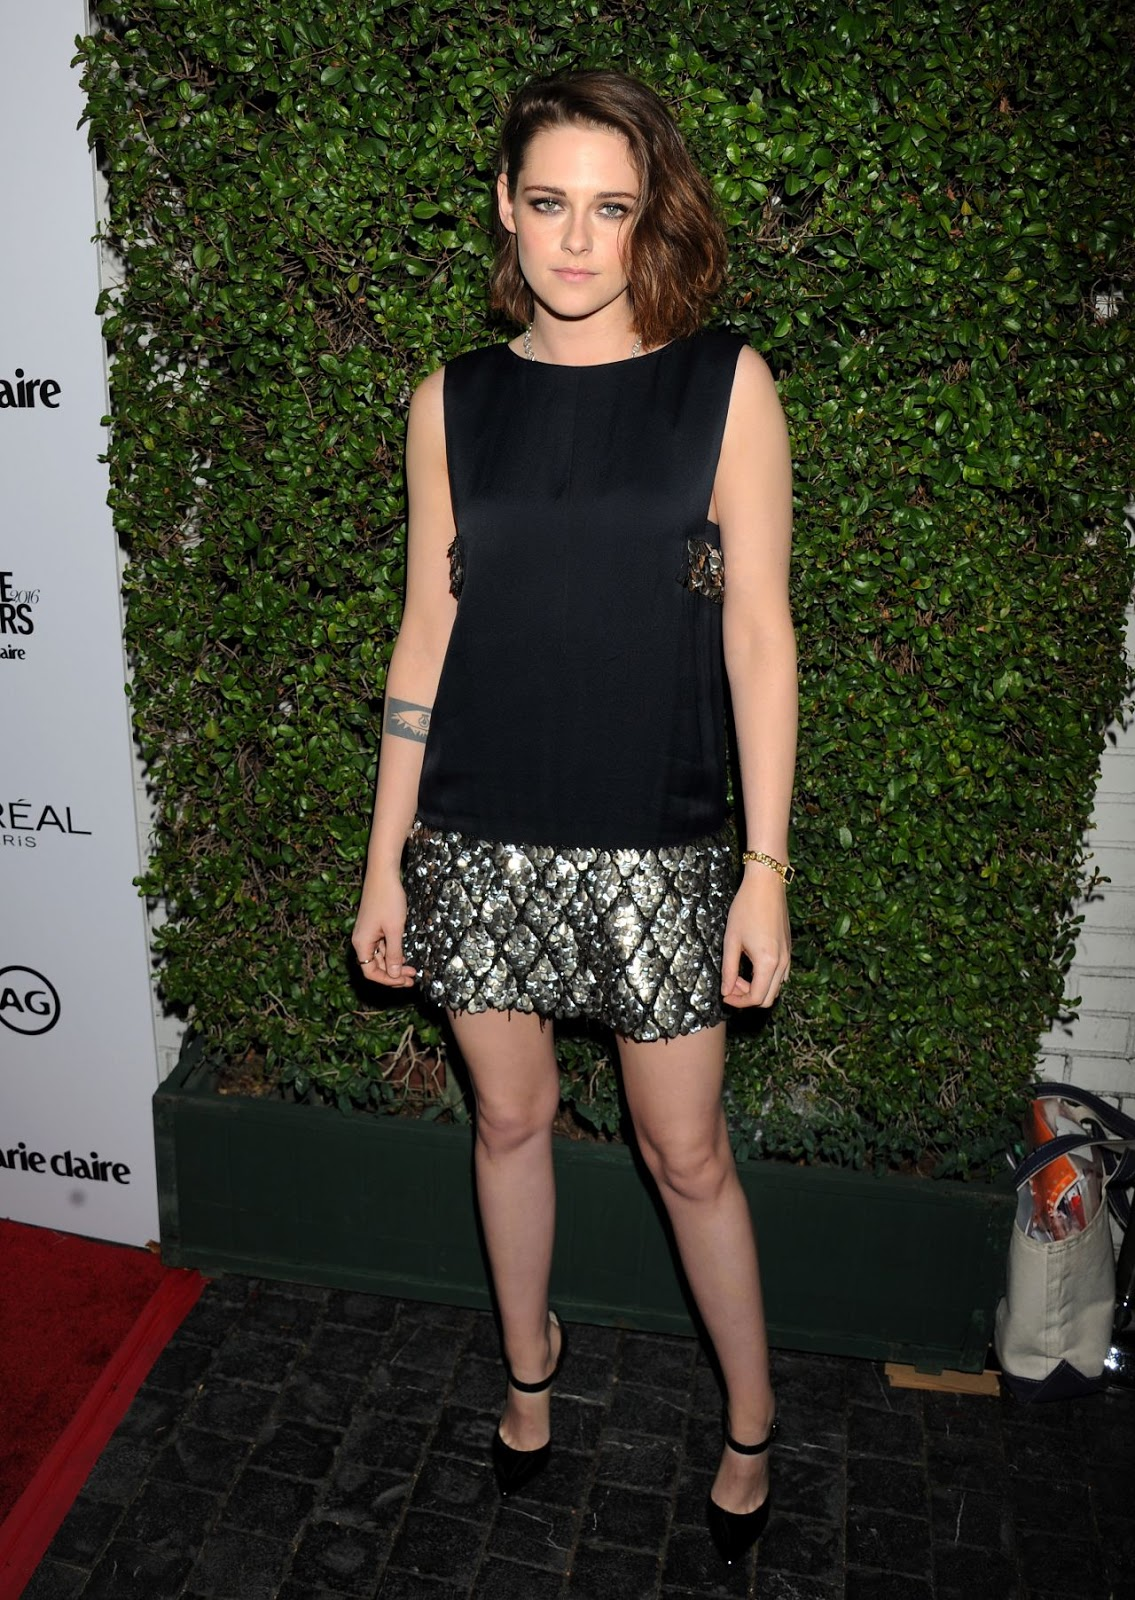 Kristen Stewart shows off legs in a sequinned mini dress at the Image Maker Awards in LA